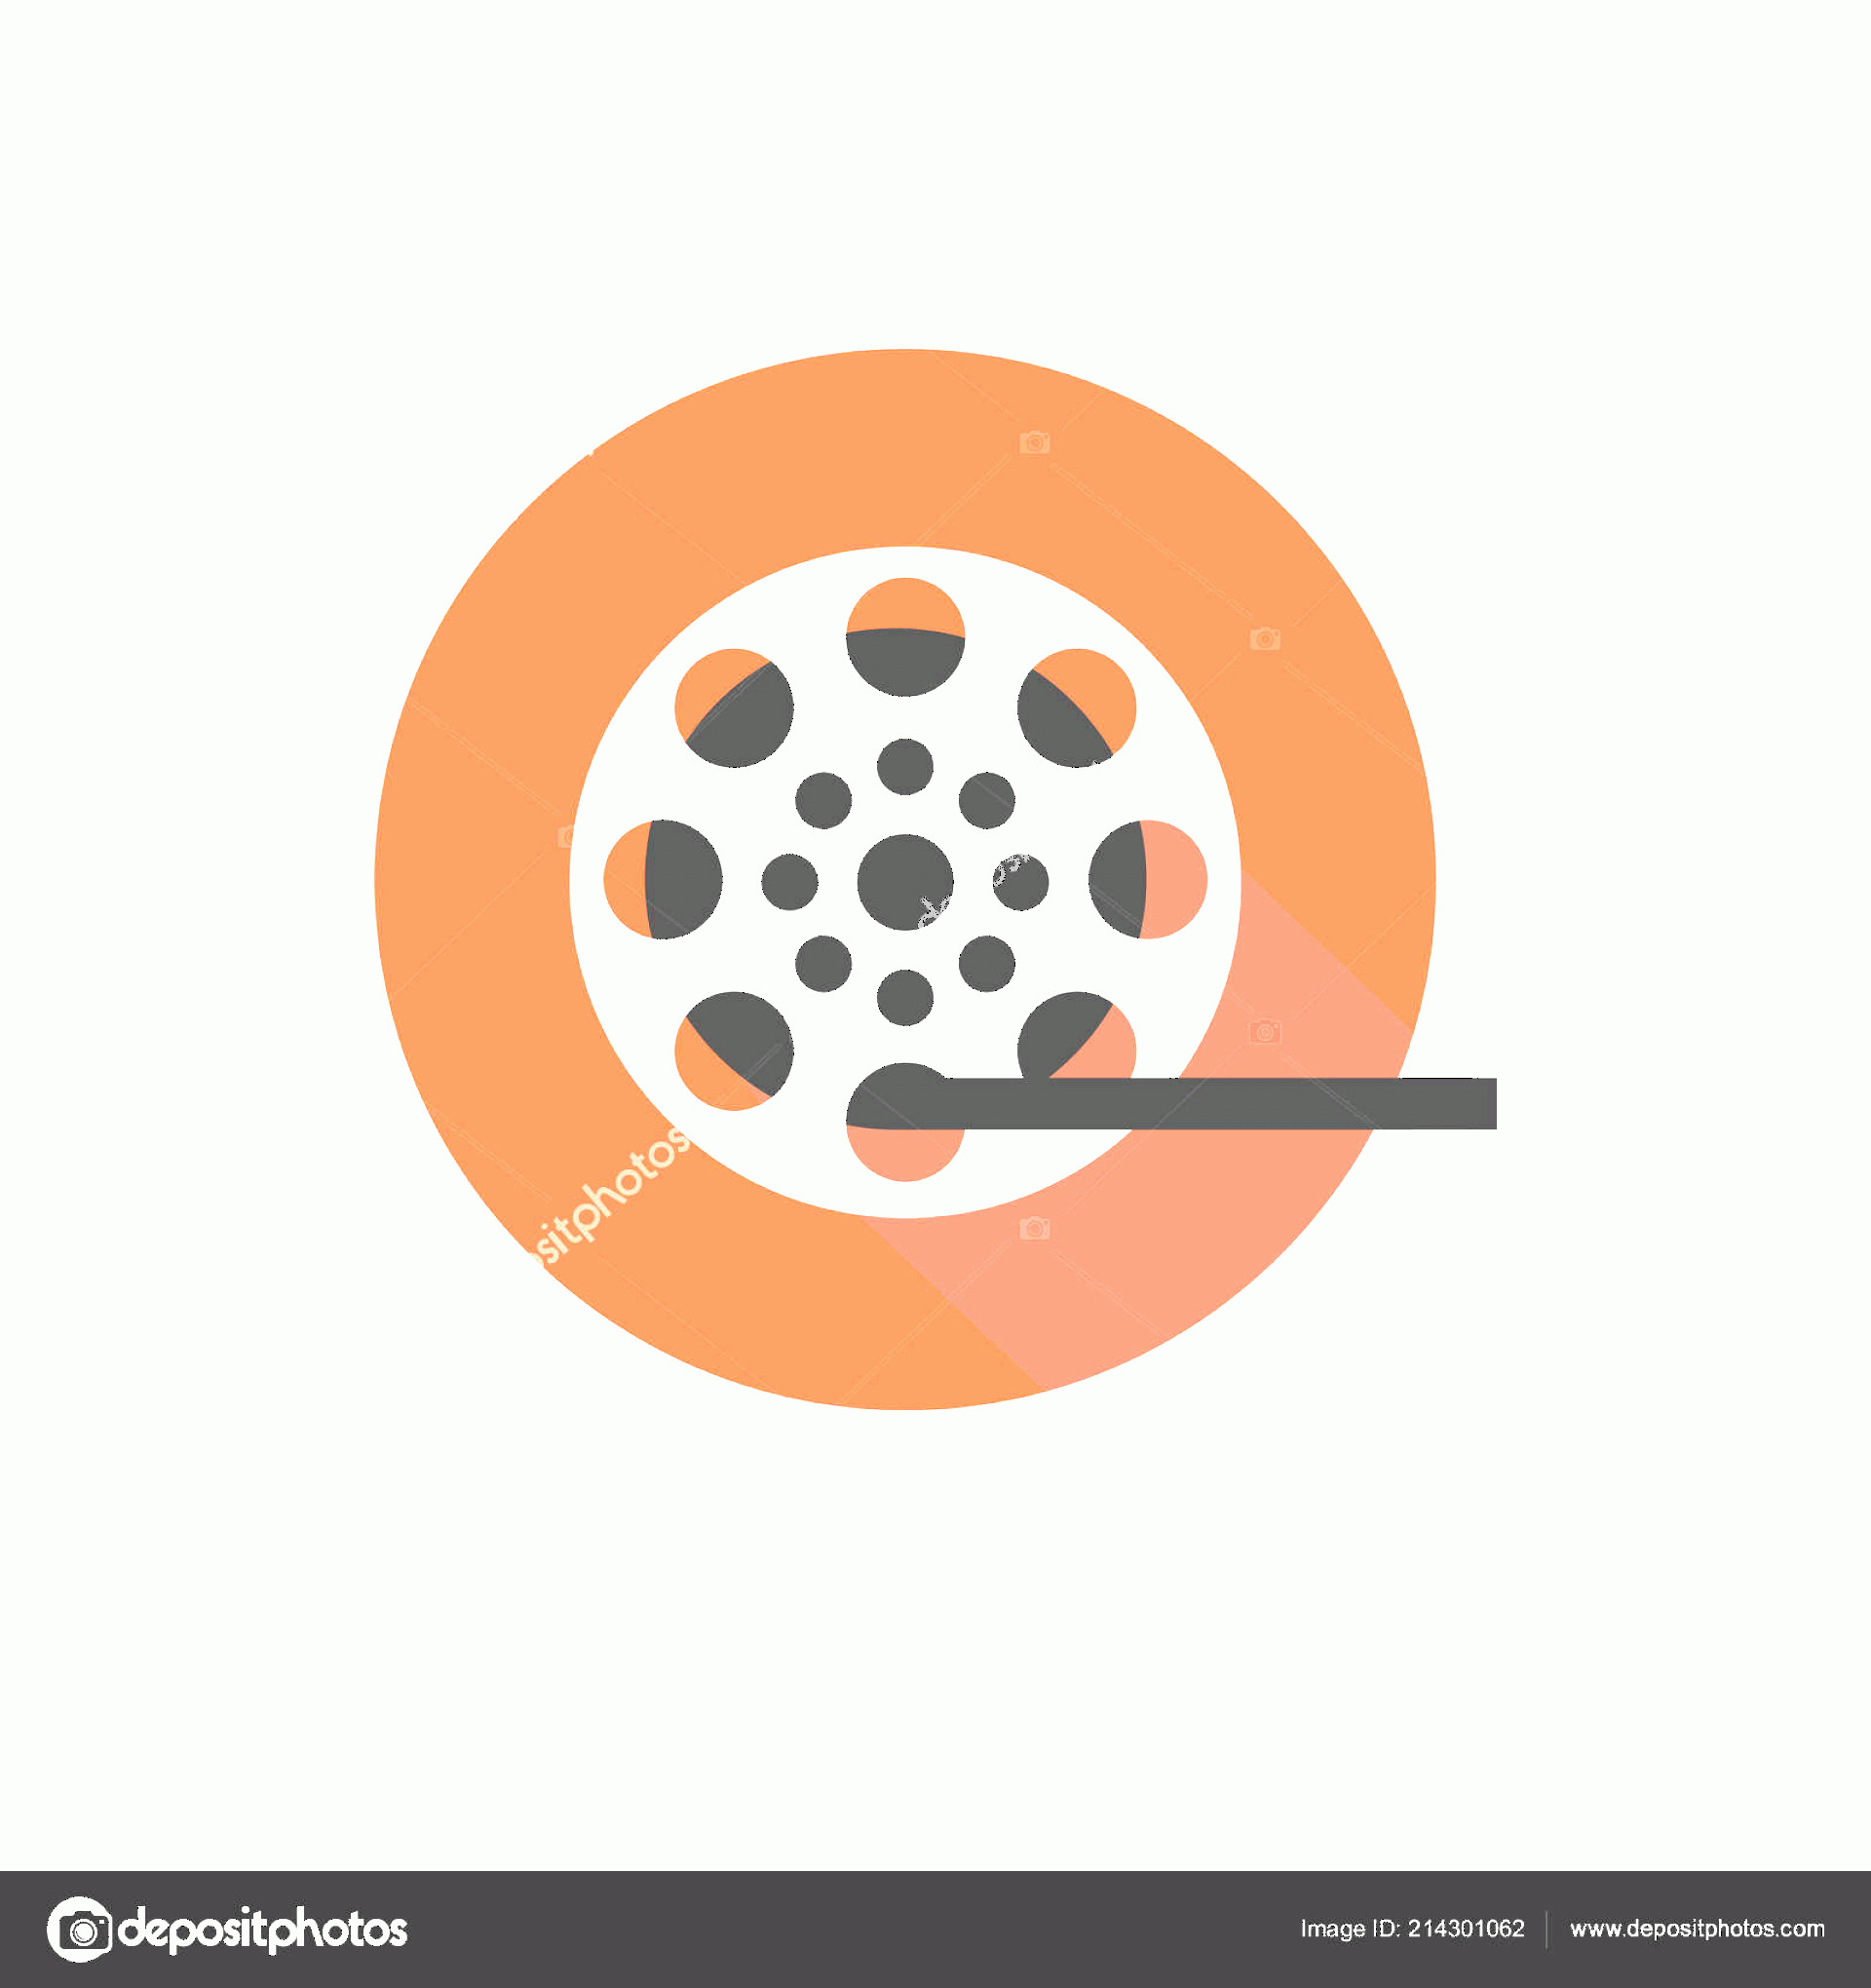 R Transparent Background Vector: Stock Illustration Film Reel Vector Icon Isolated